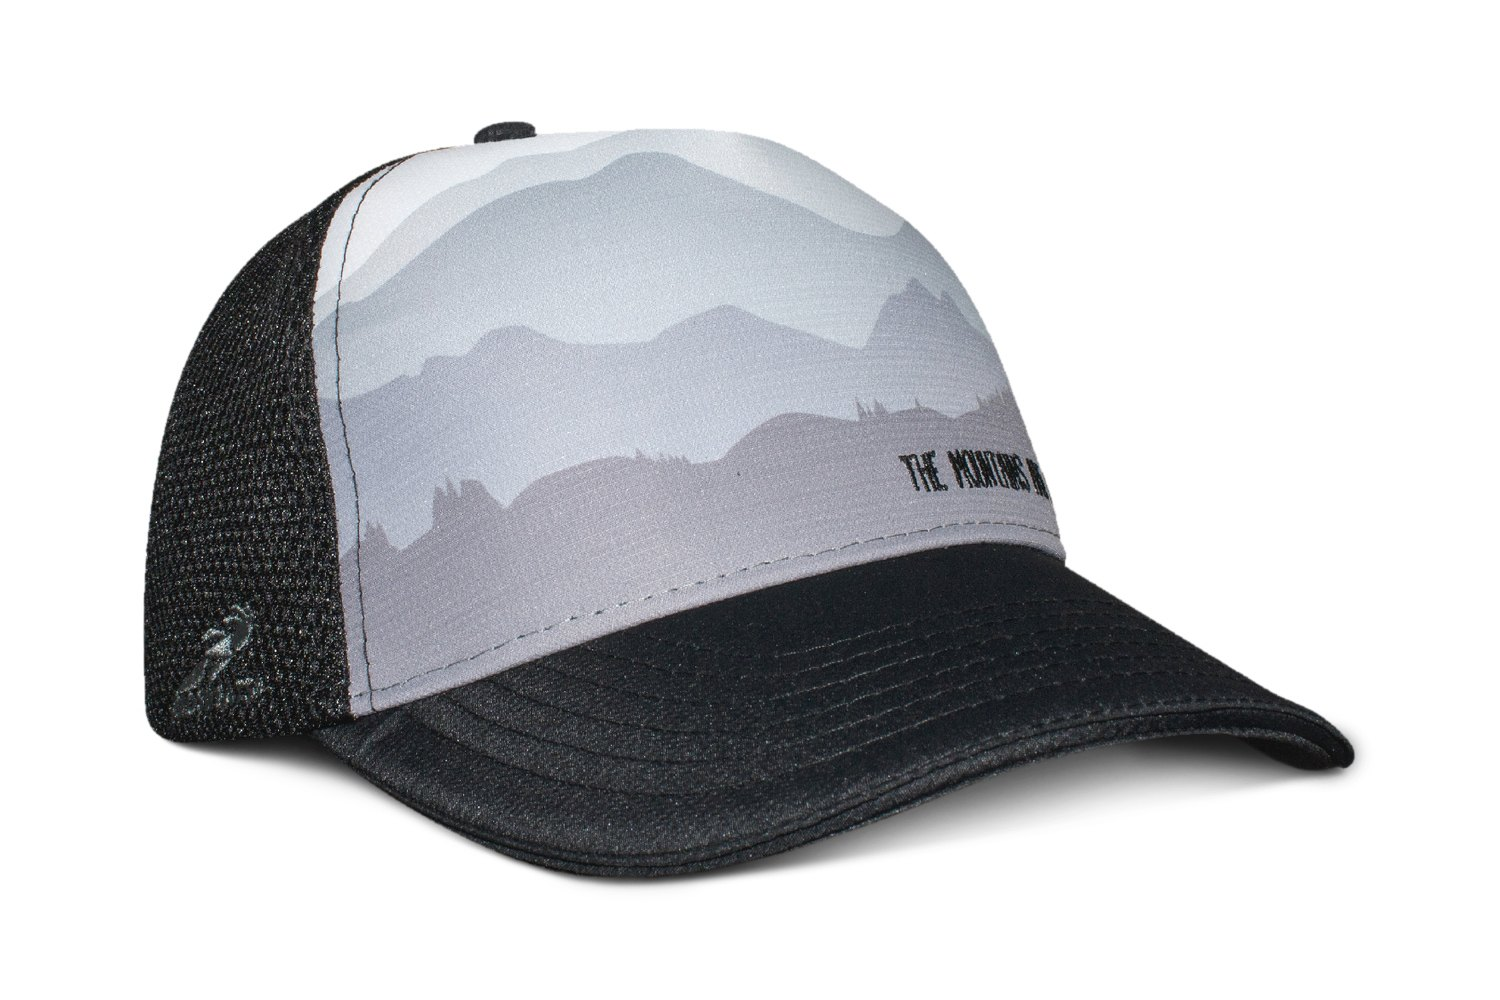 80f1cdb59551a ... Headsweats® - Misty Morning Trucker Hat ...